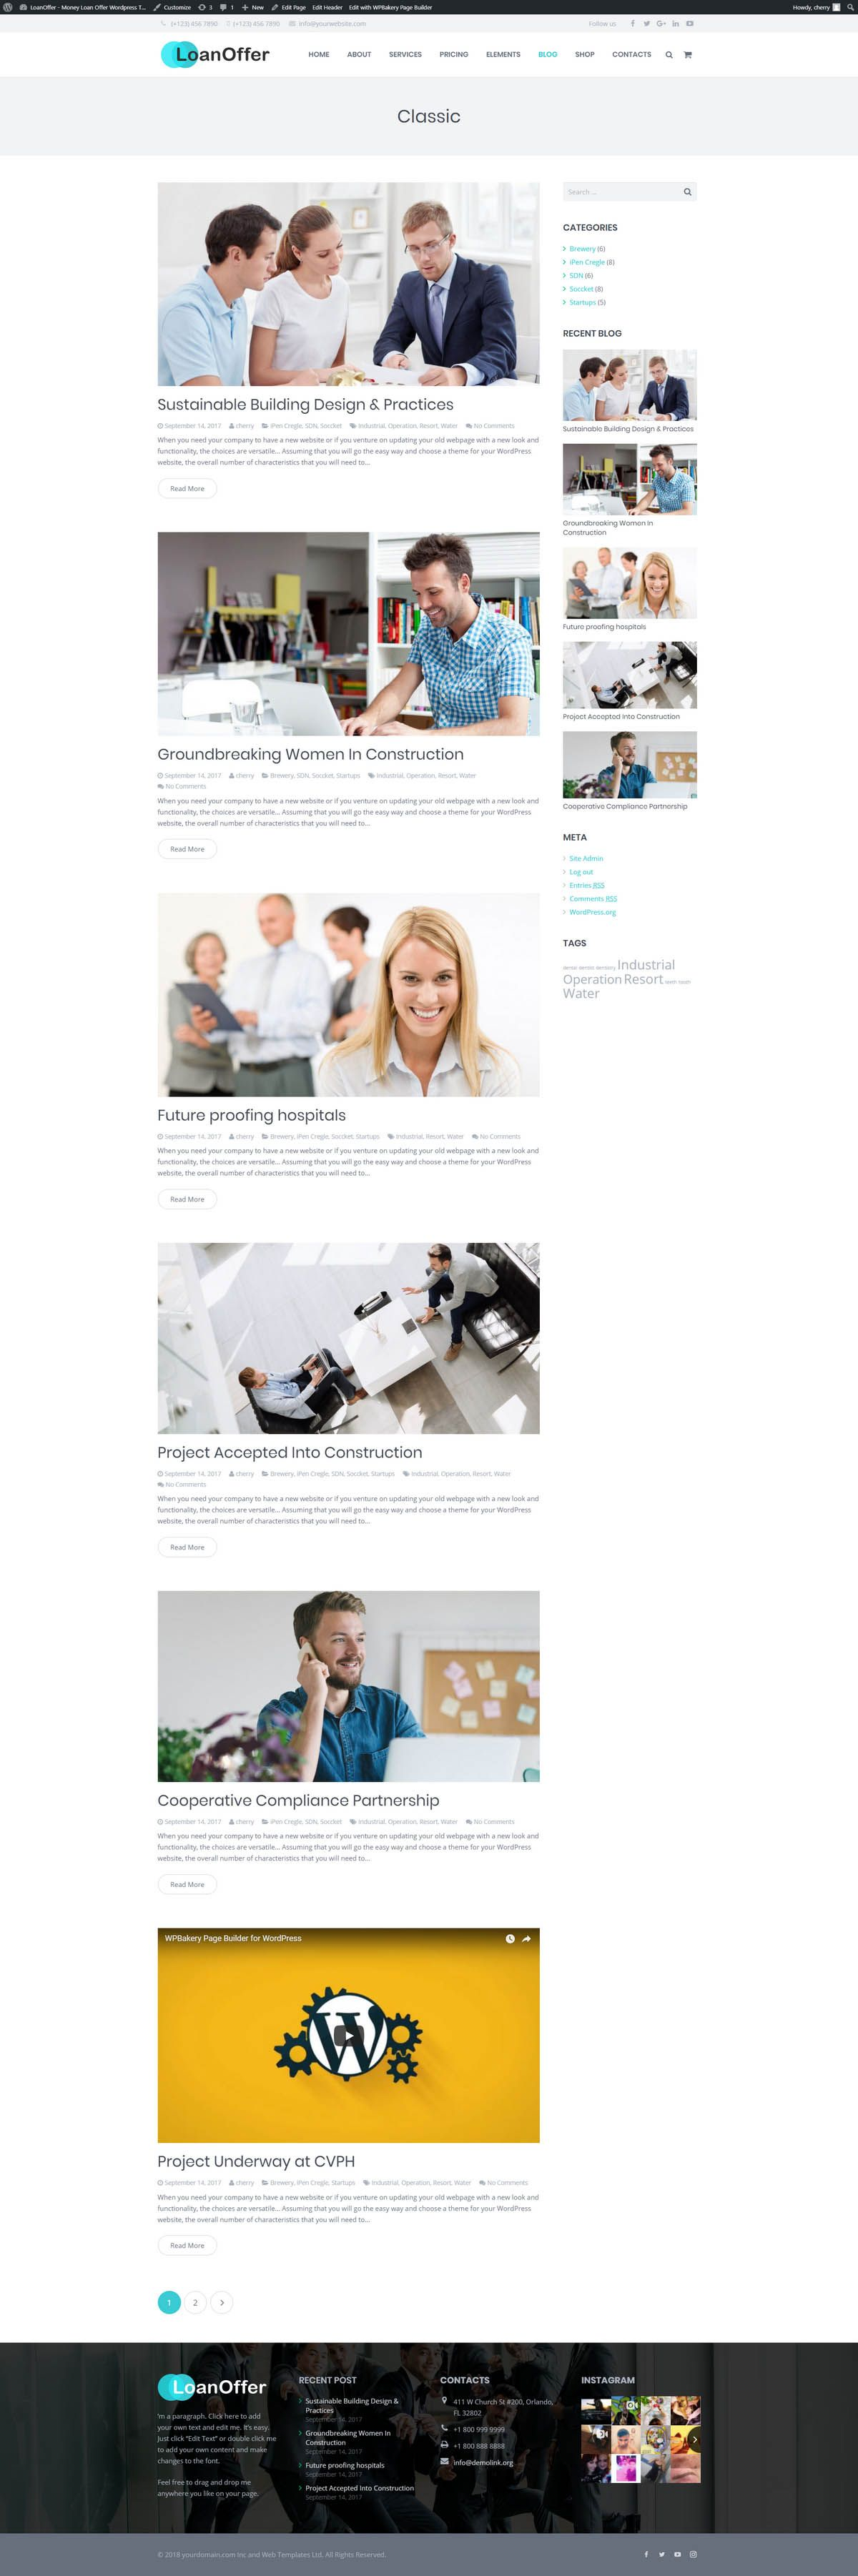 LoanOffer - Business Loan WordPress Theme Screenshot 8